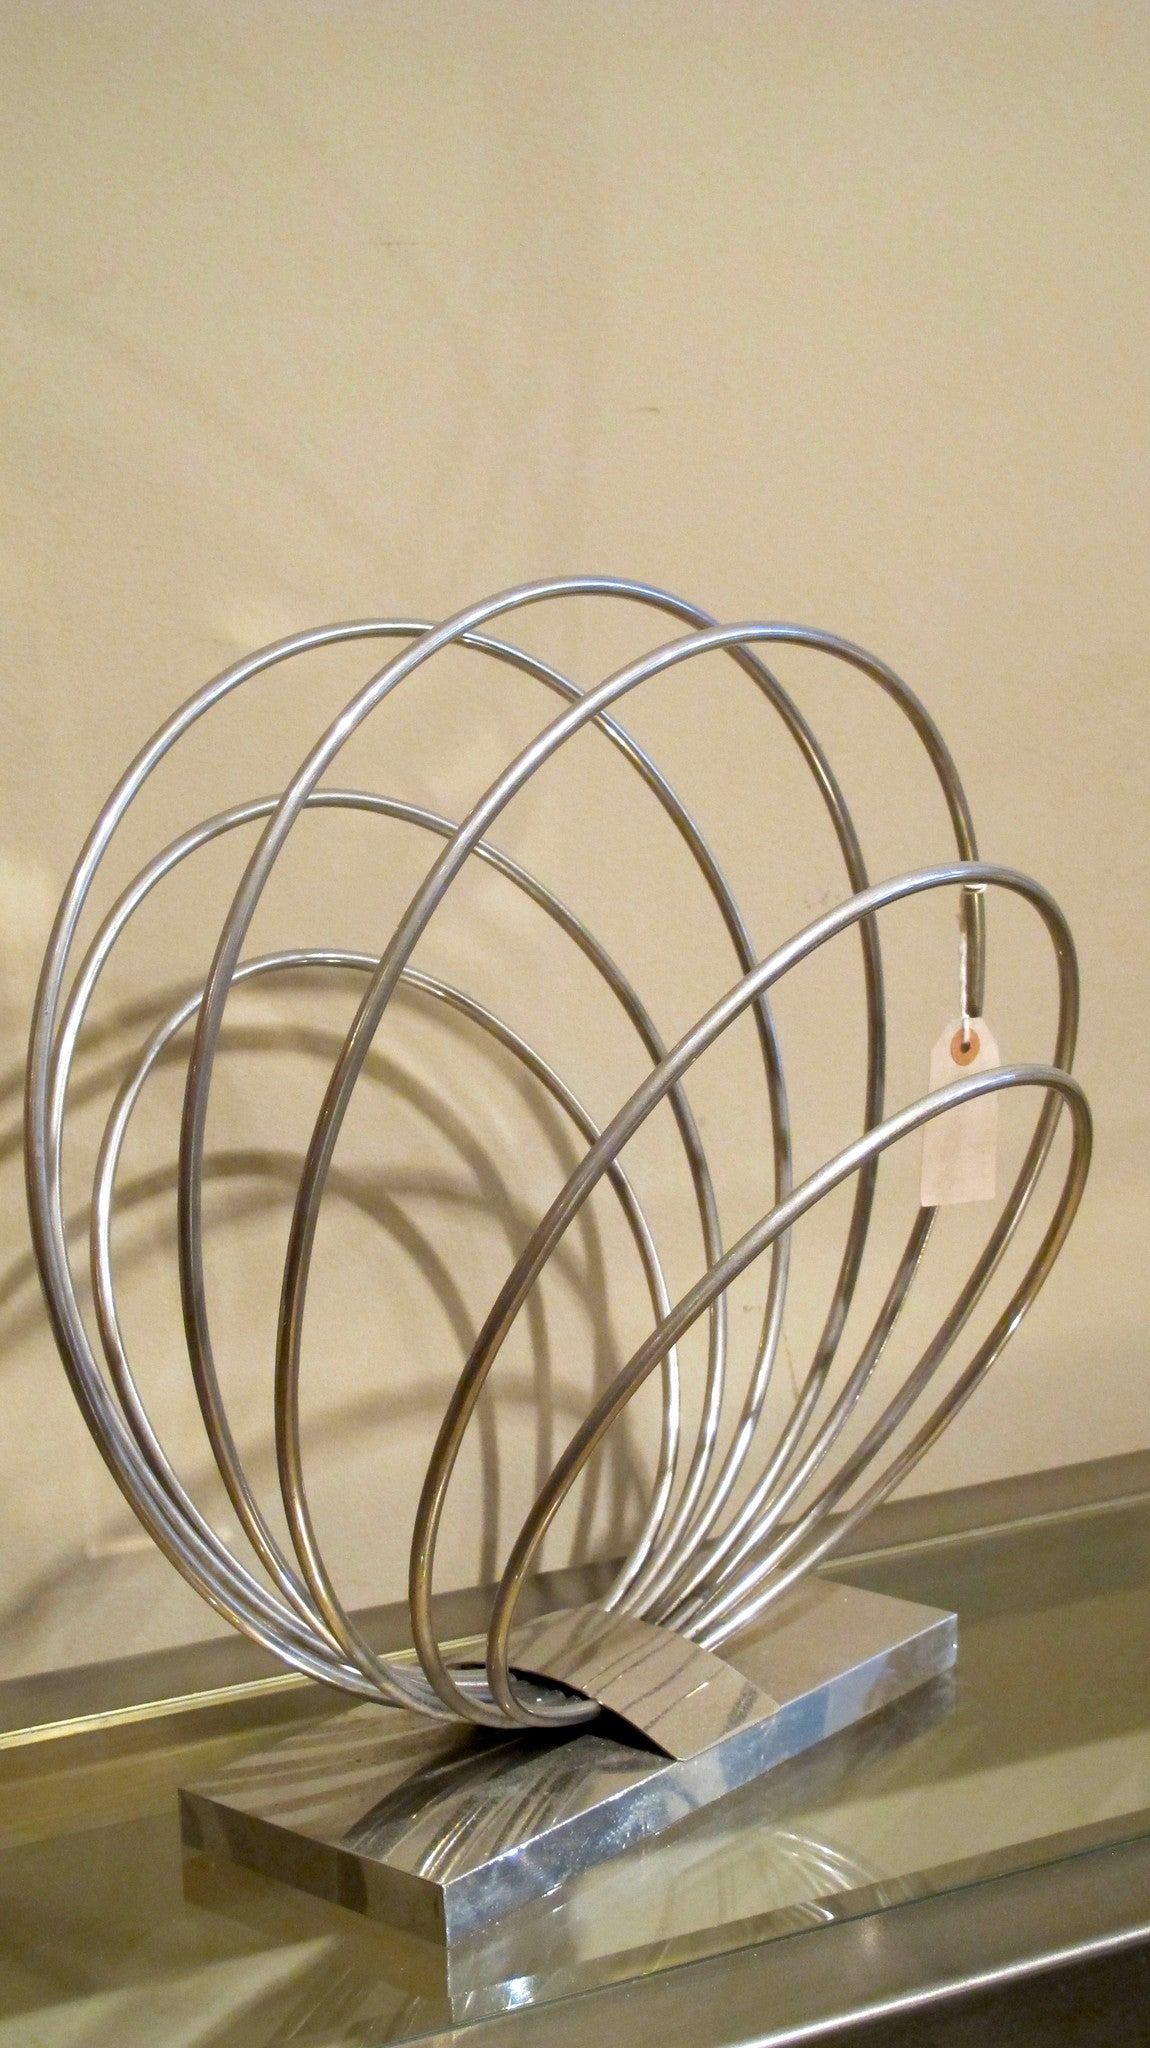 A chrome modernist Italian magazine rack.